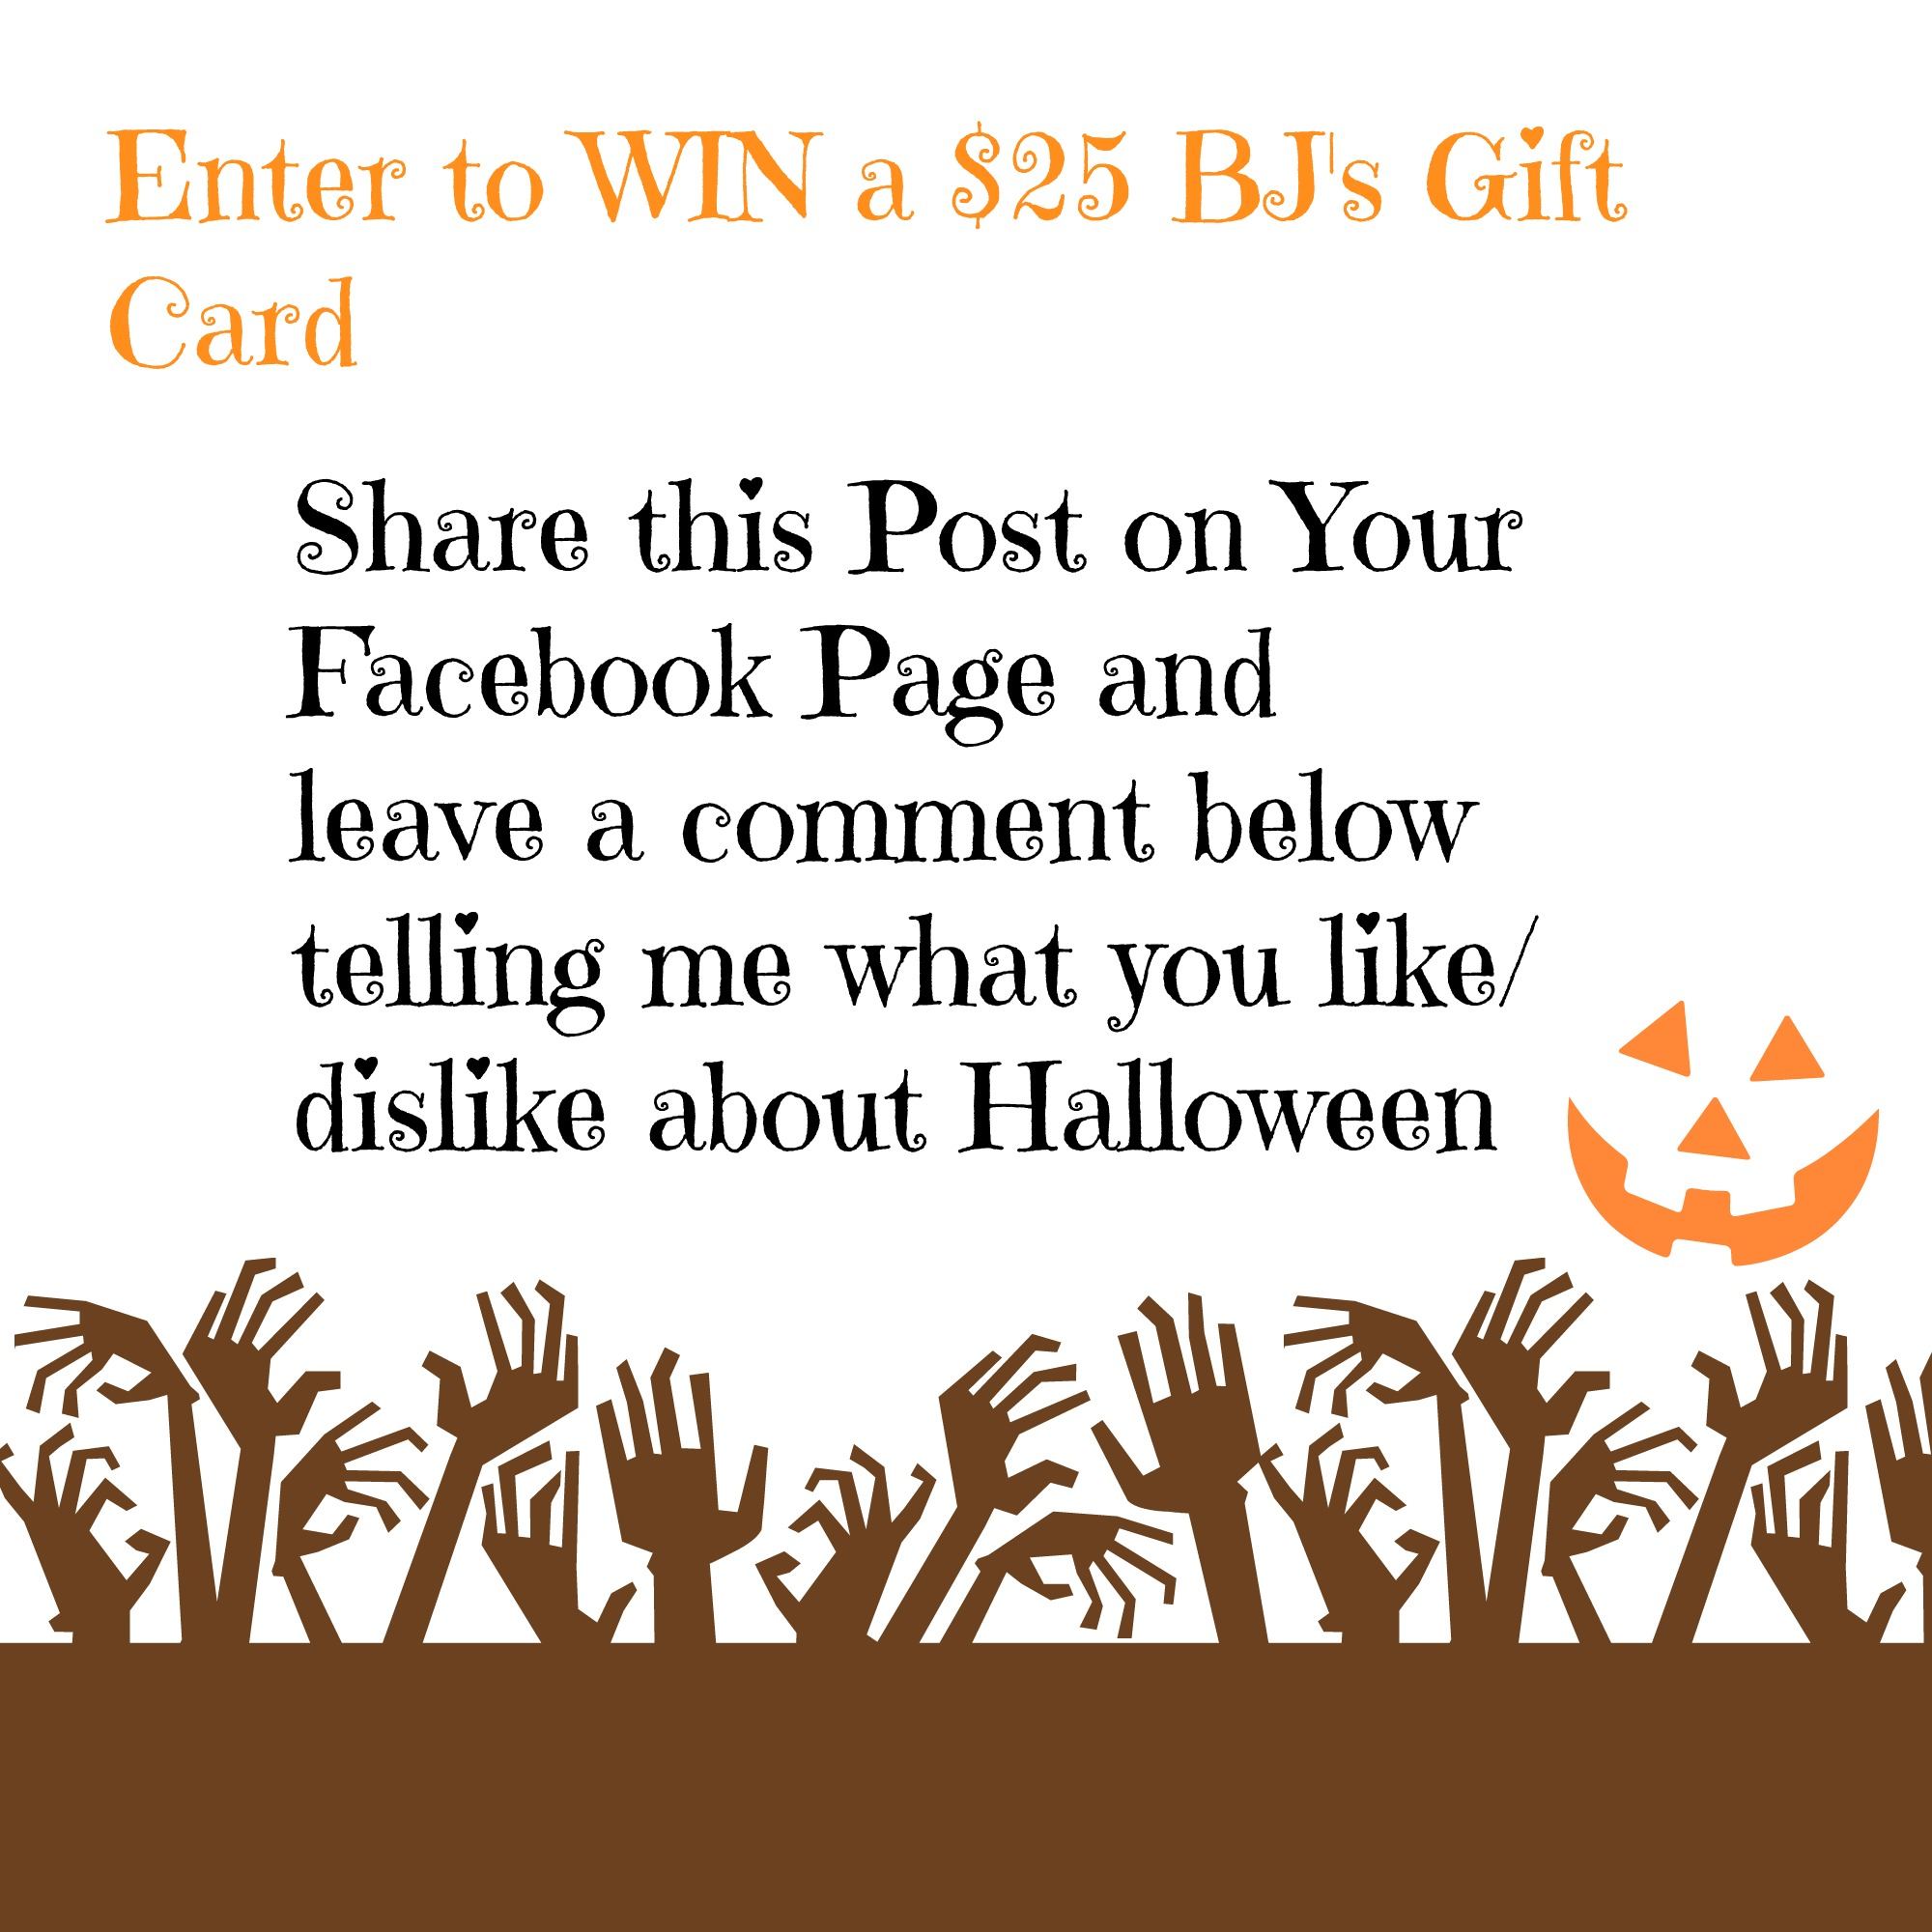 bj s restaurant gift card enter to win a 25 bj s gift card my bjs wholesale 572